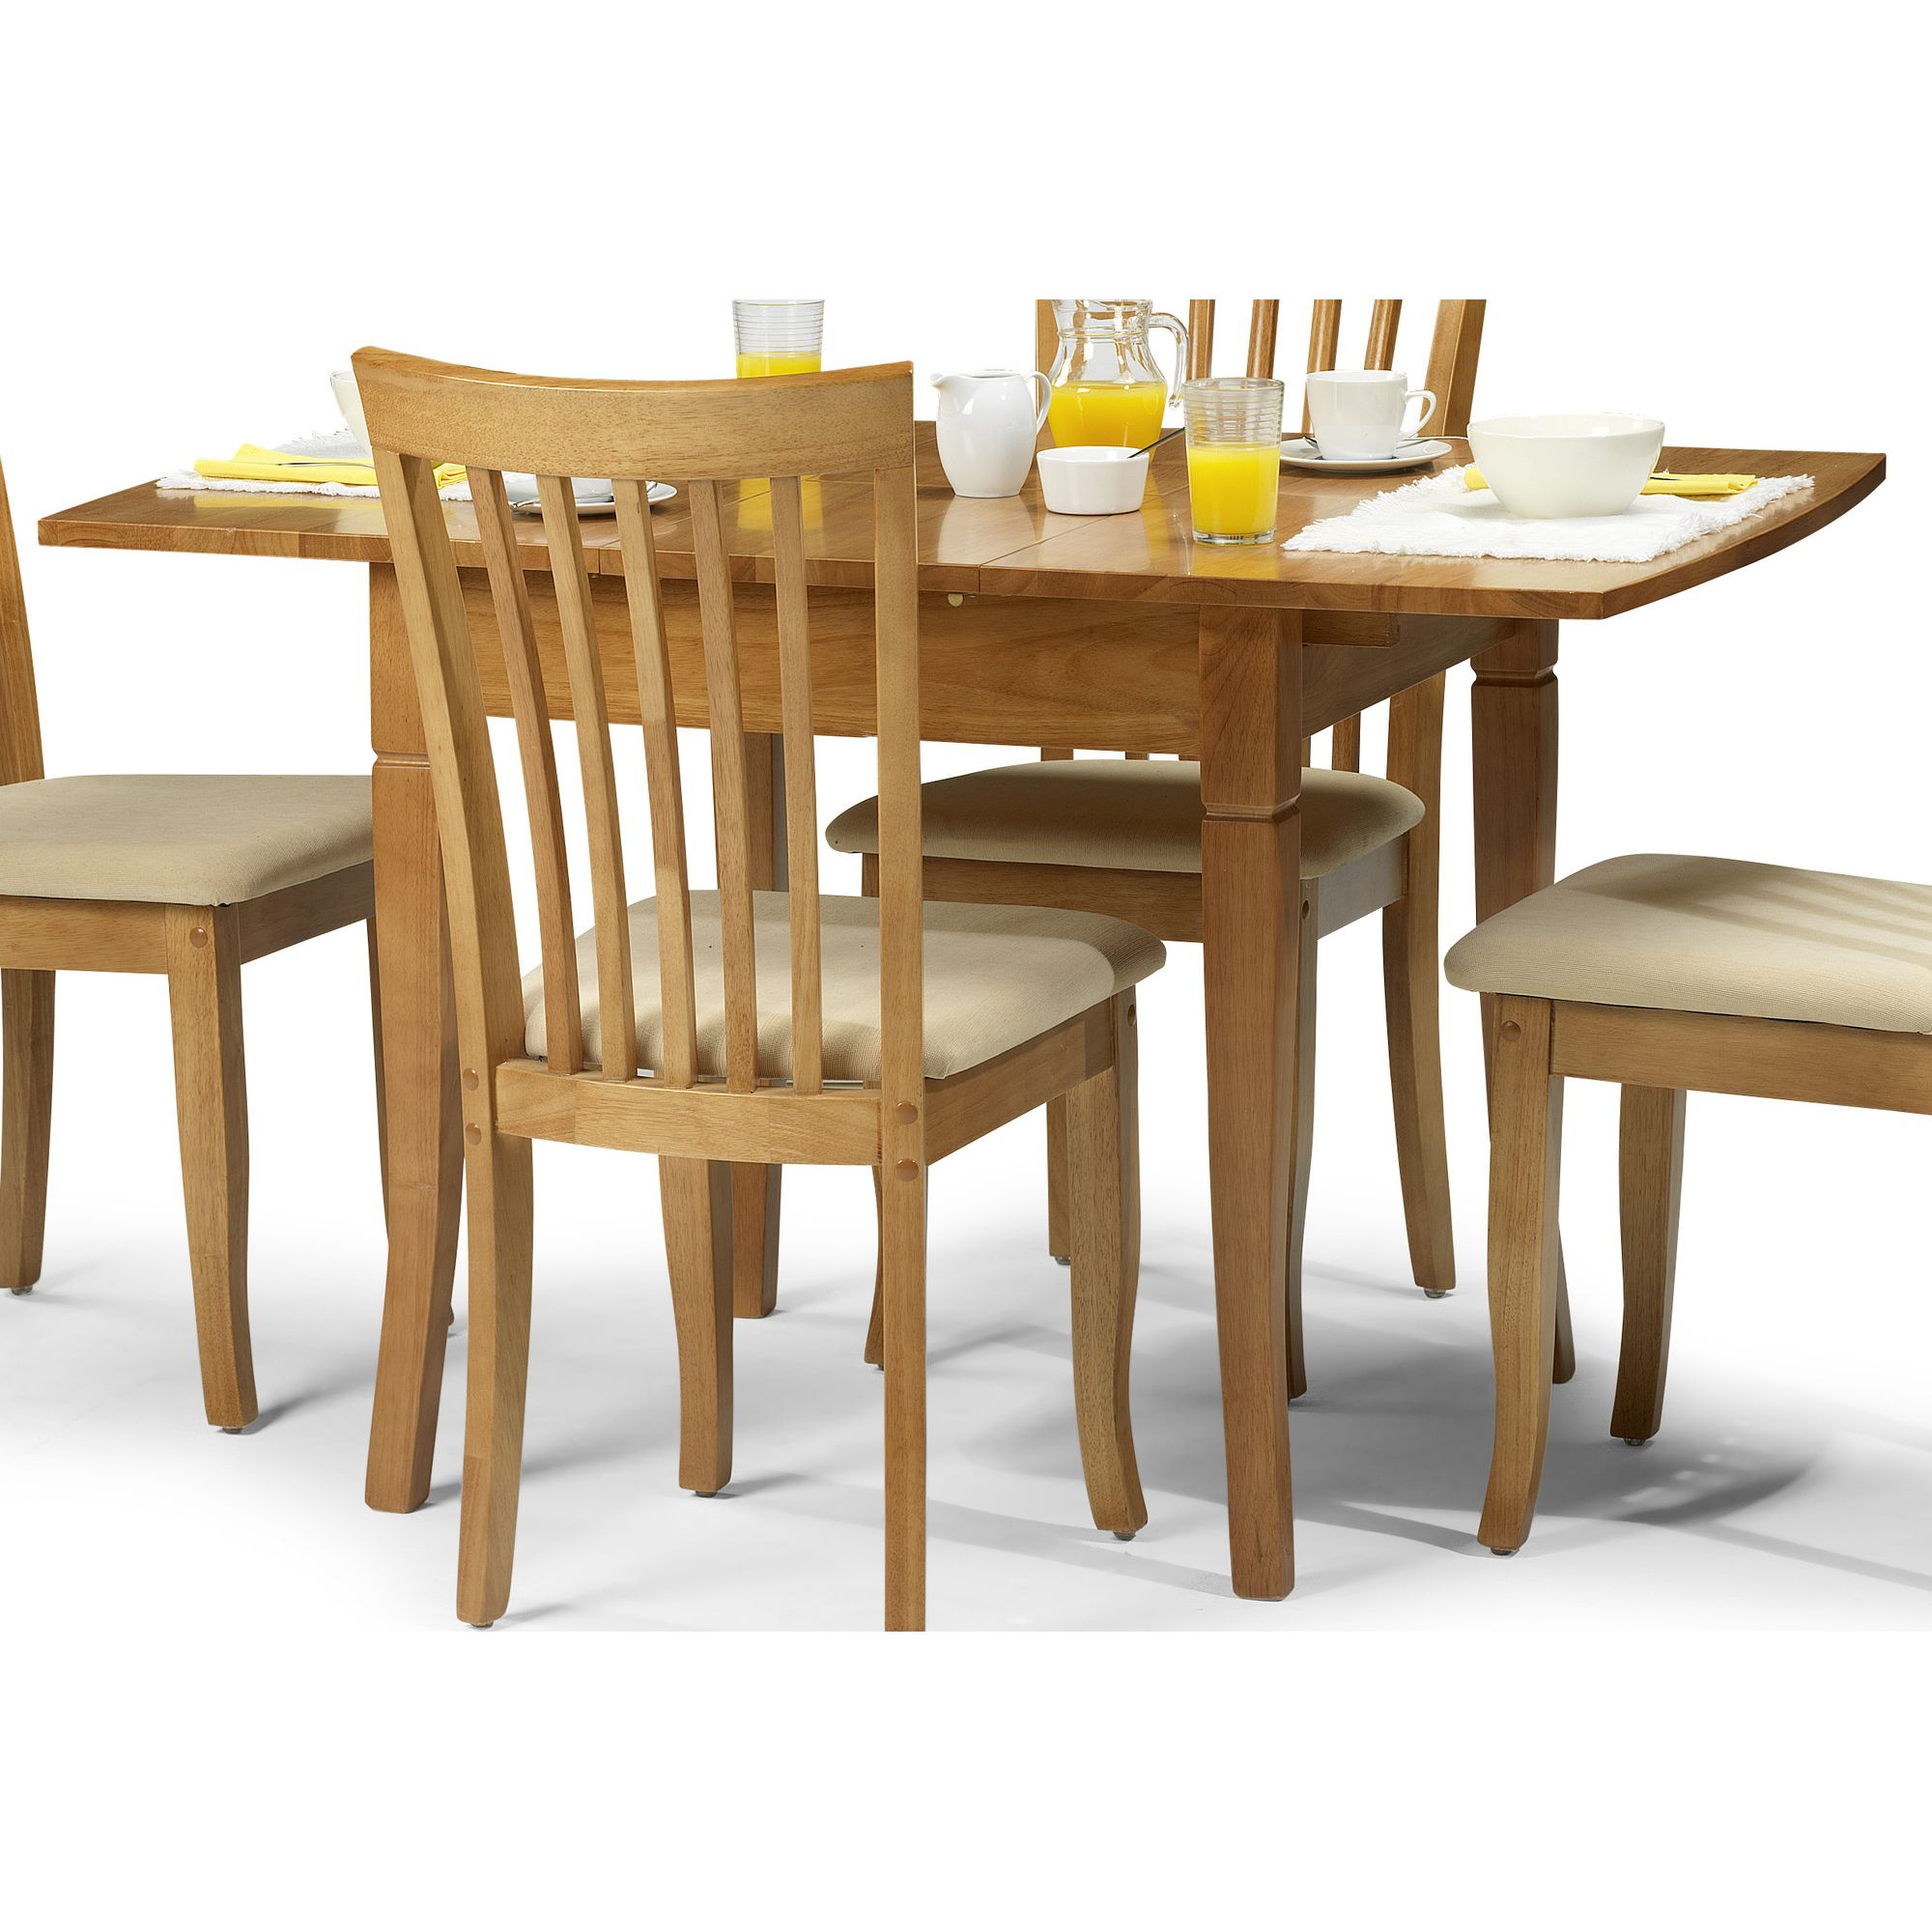 Home And Garden Furniture Julian Bowen Mandy Dining Dining Chair Set Of 2 White Special